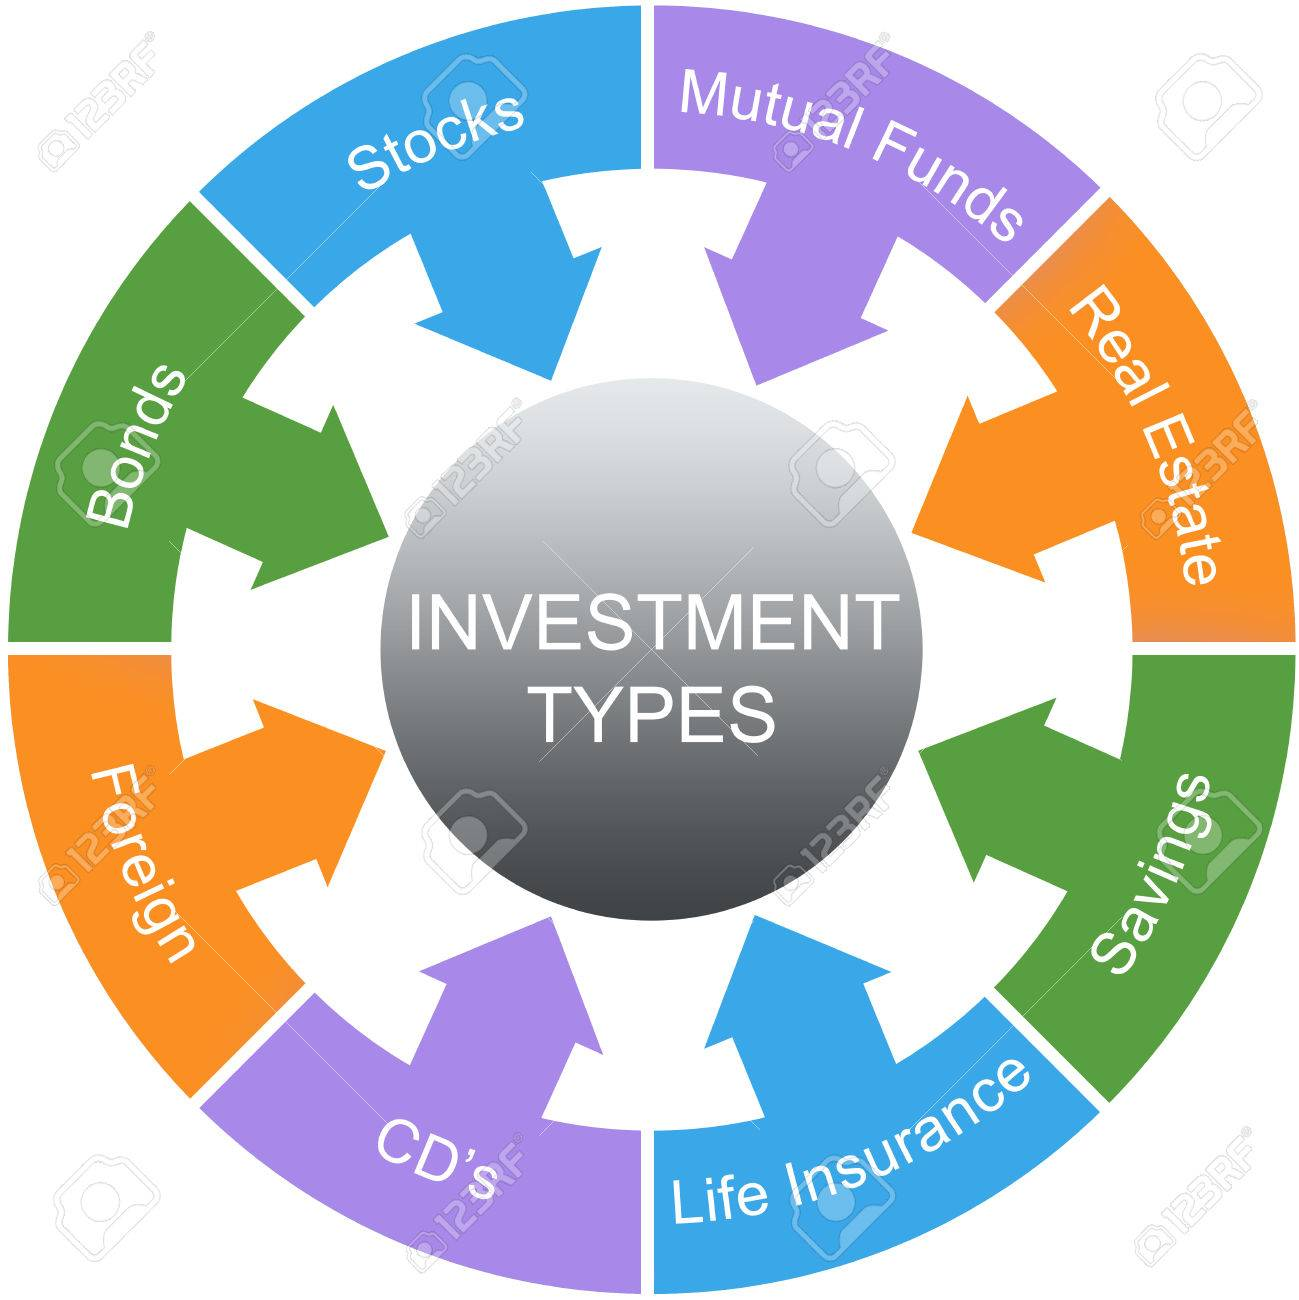 Image result for investment types